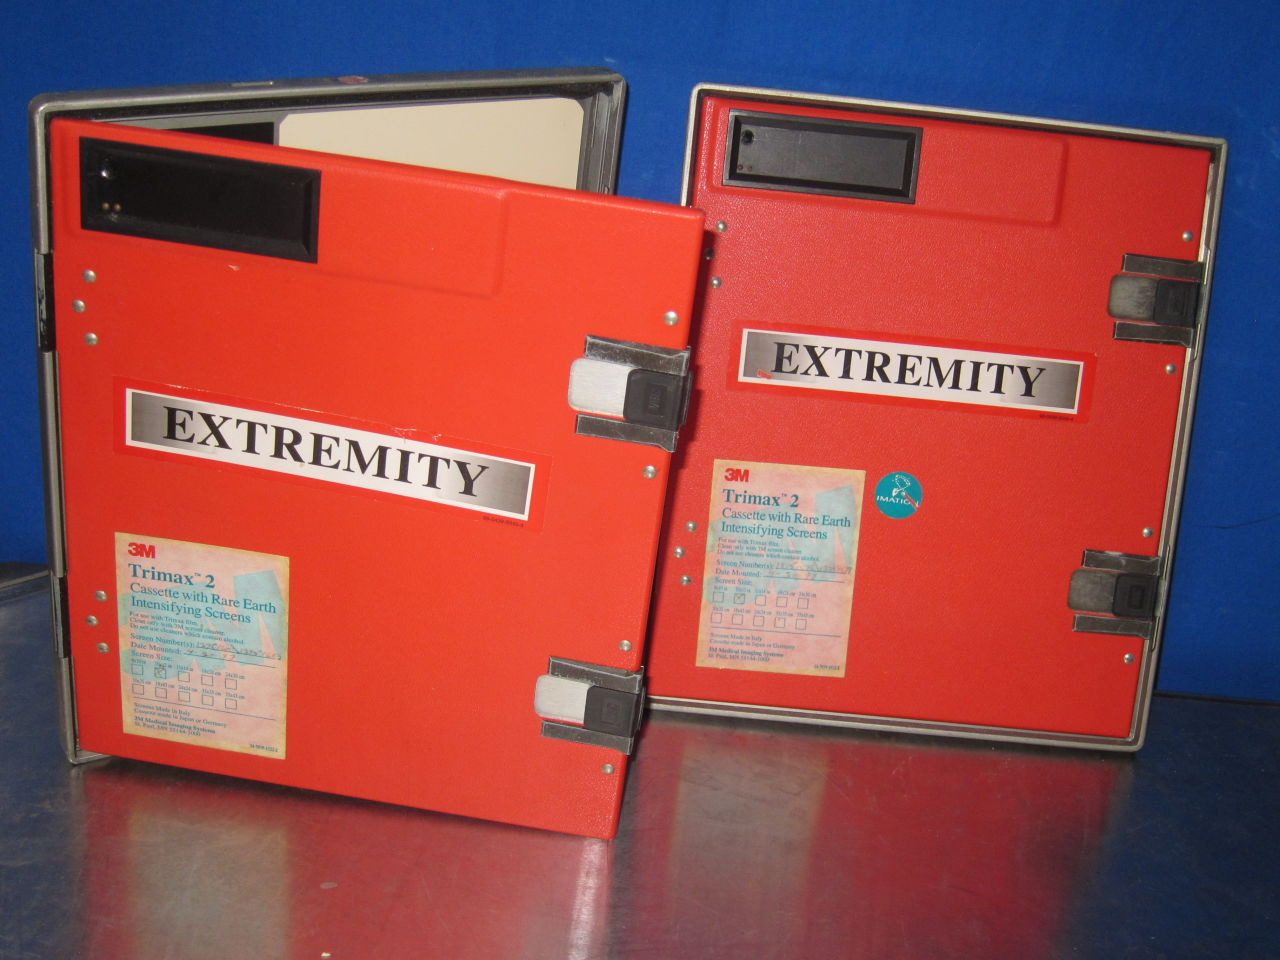 3M Trimax 2 w/ Rare Earth Intensifying Screens  - Lot of 2 Cassettes